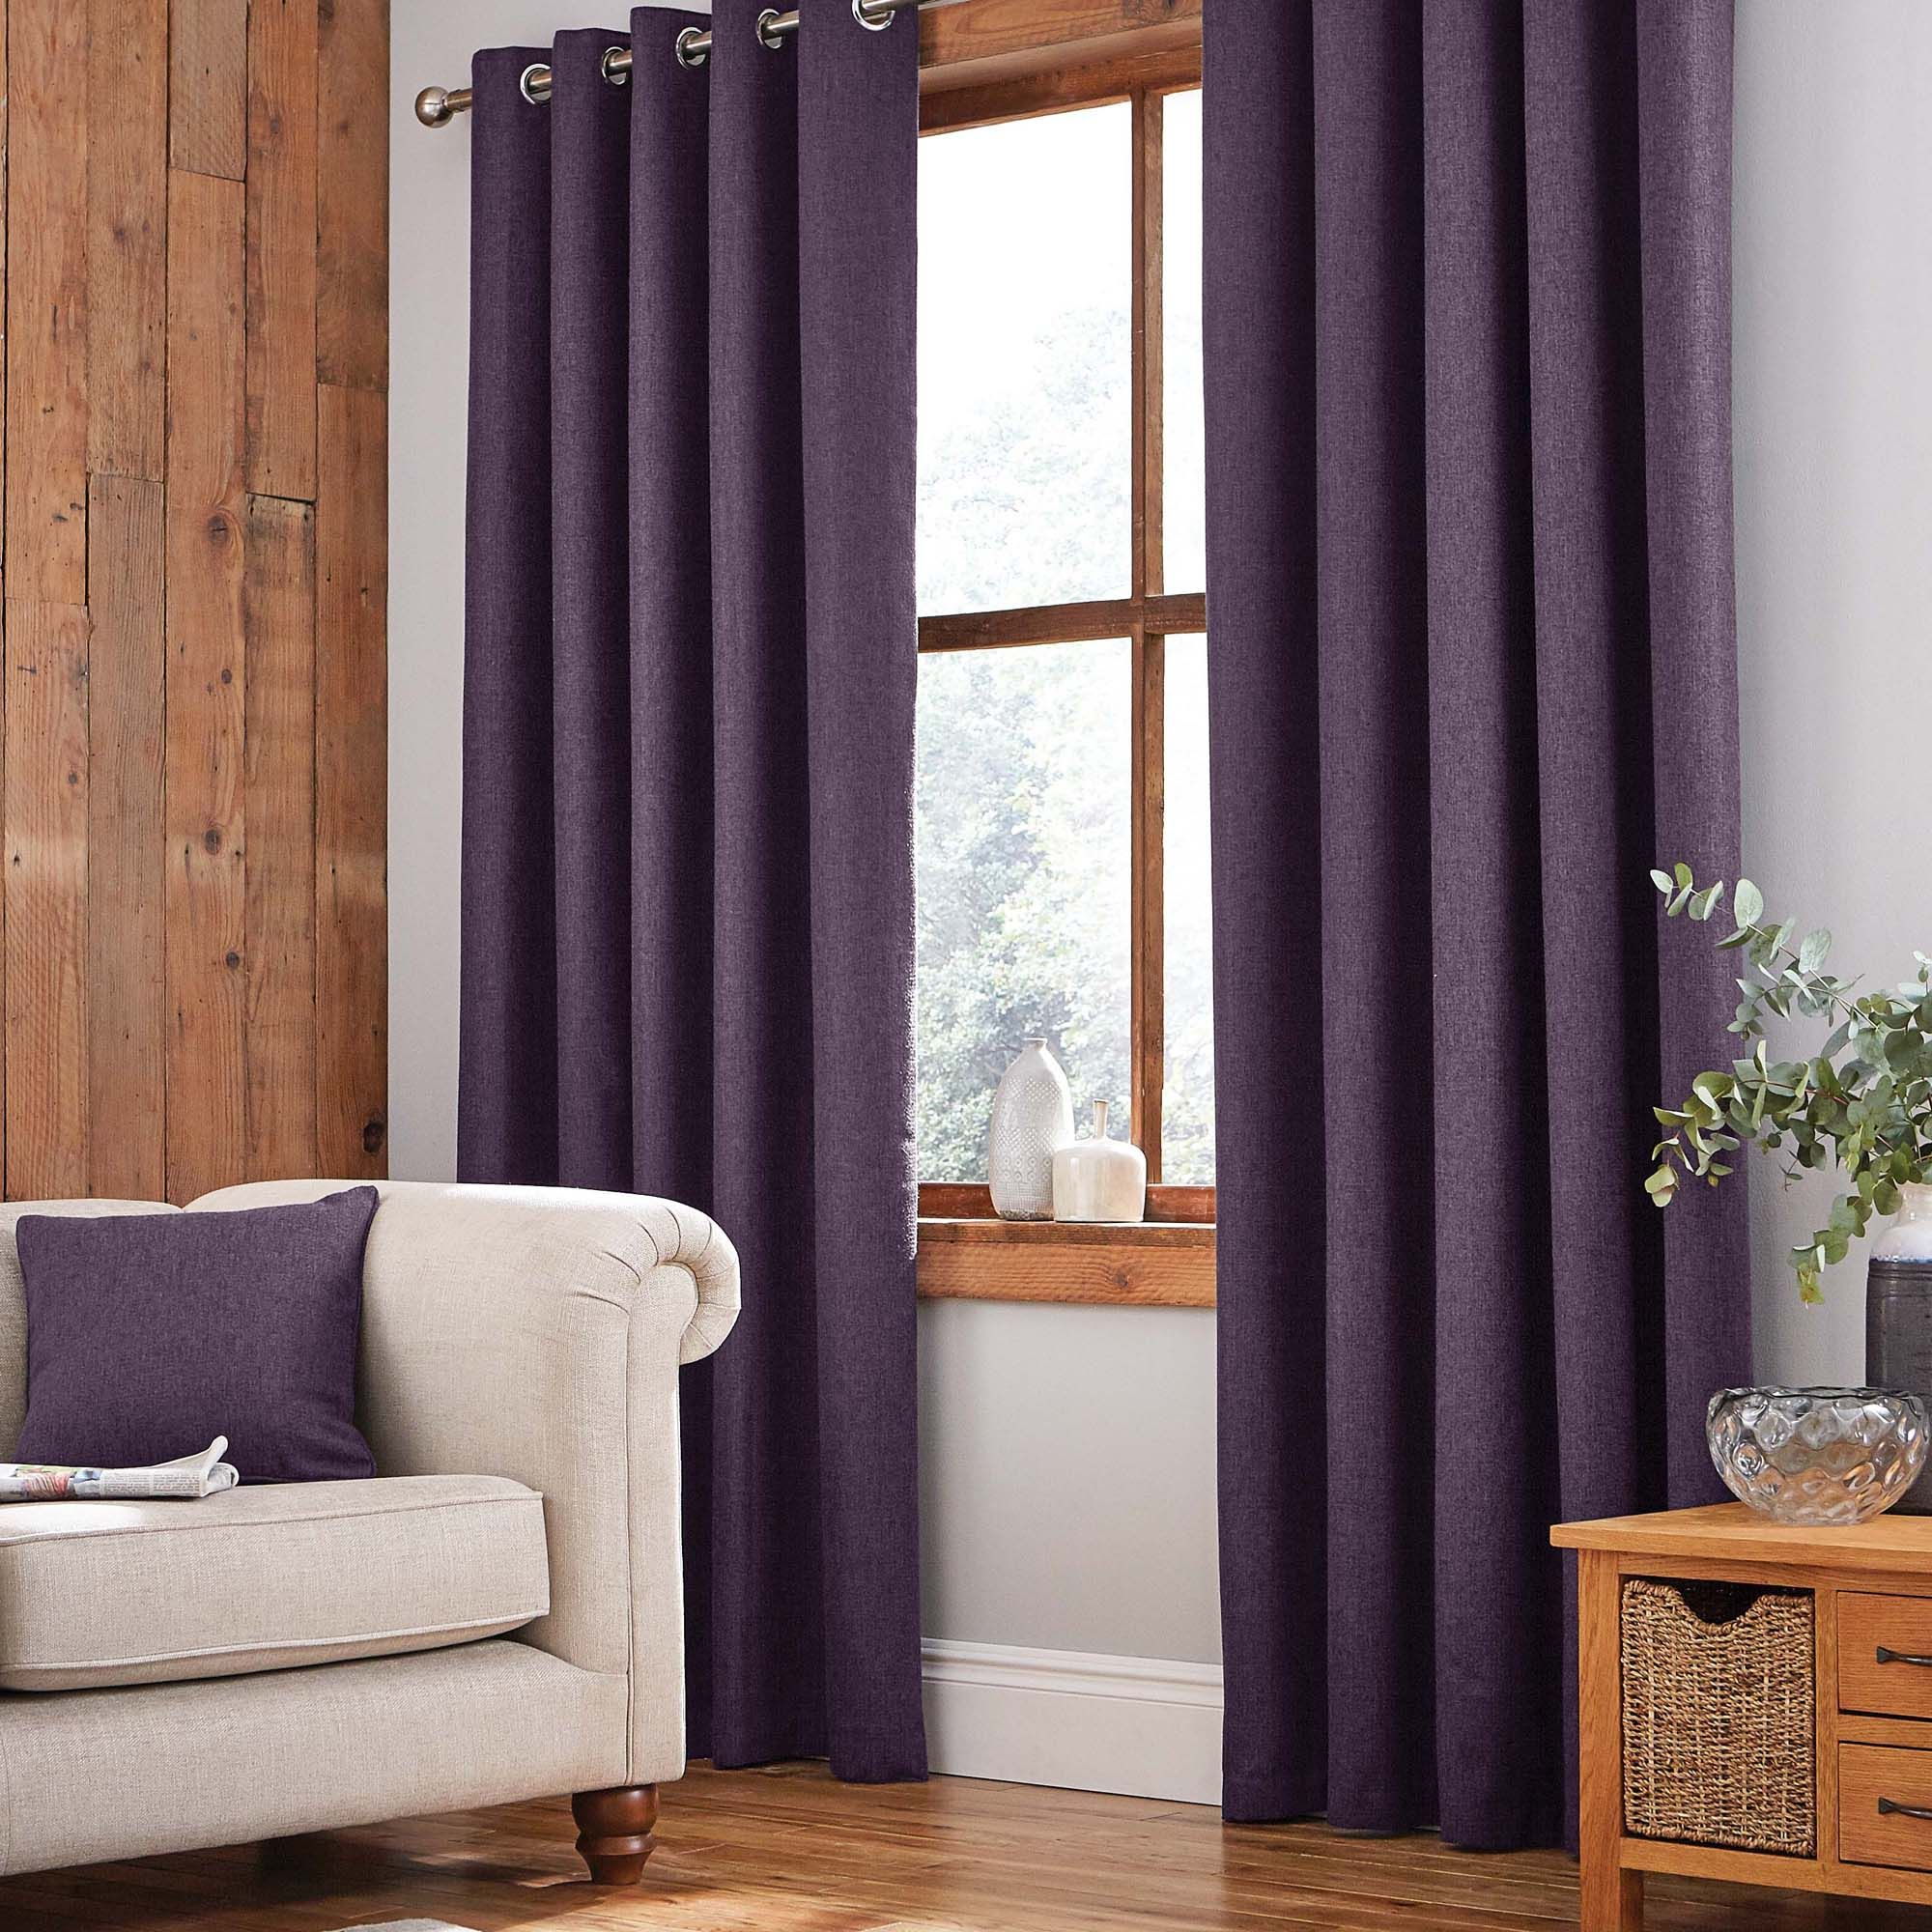 Jennings Aubergine Thermal Eyelet Curtains Eyelet Curtains Design Charcoal Curtains Living Room Blinds #summer #living #room #curtains